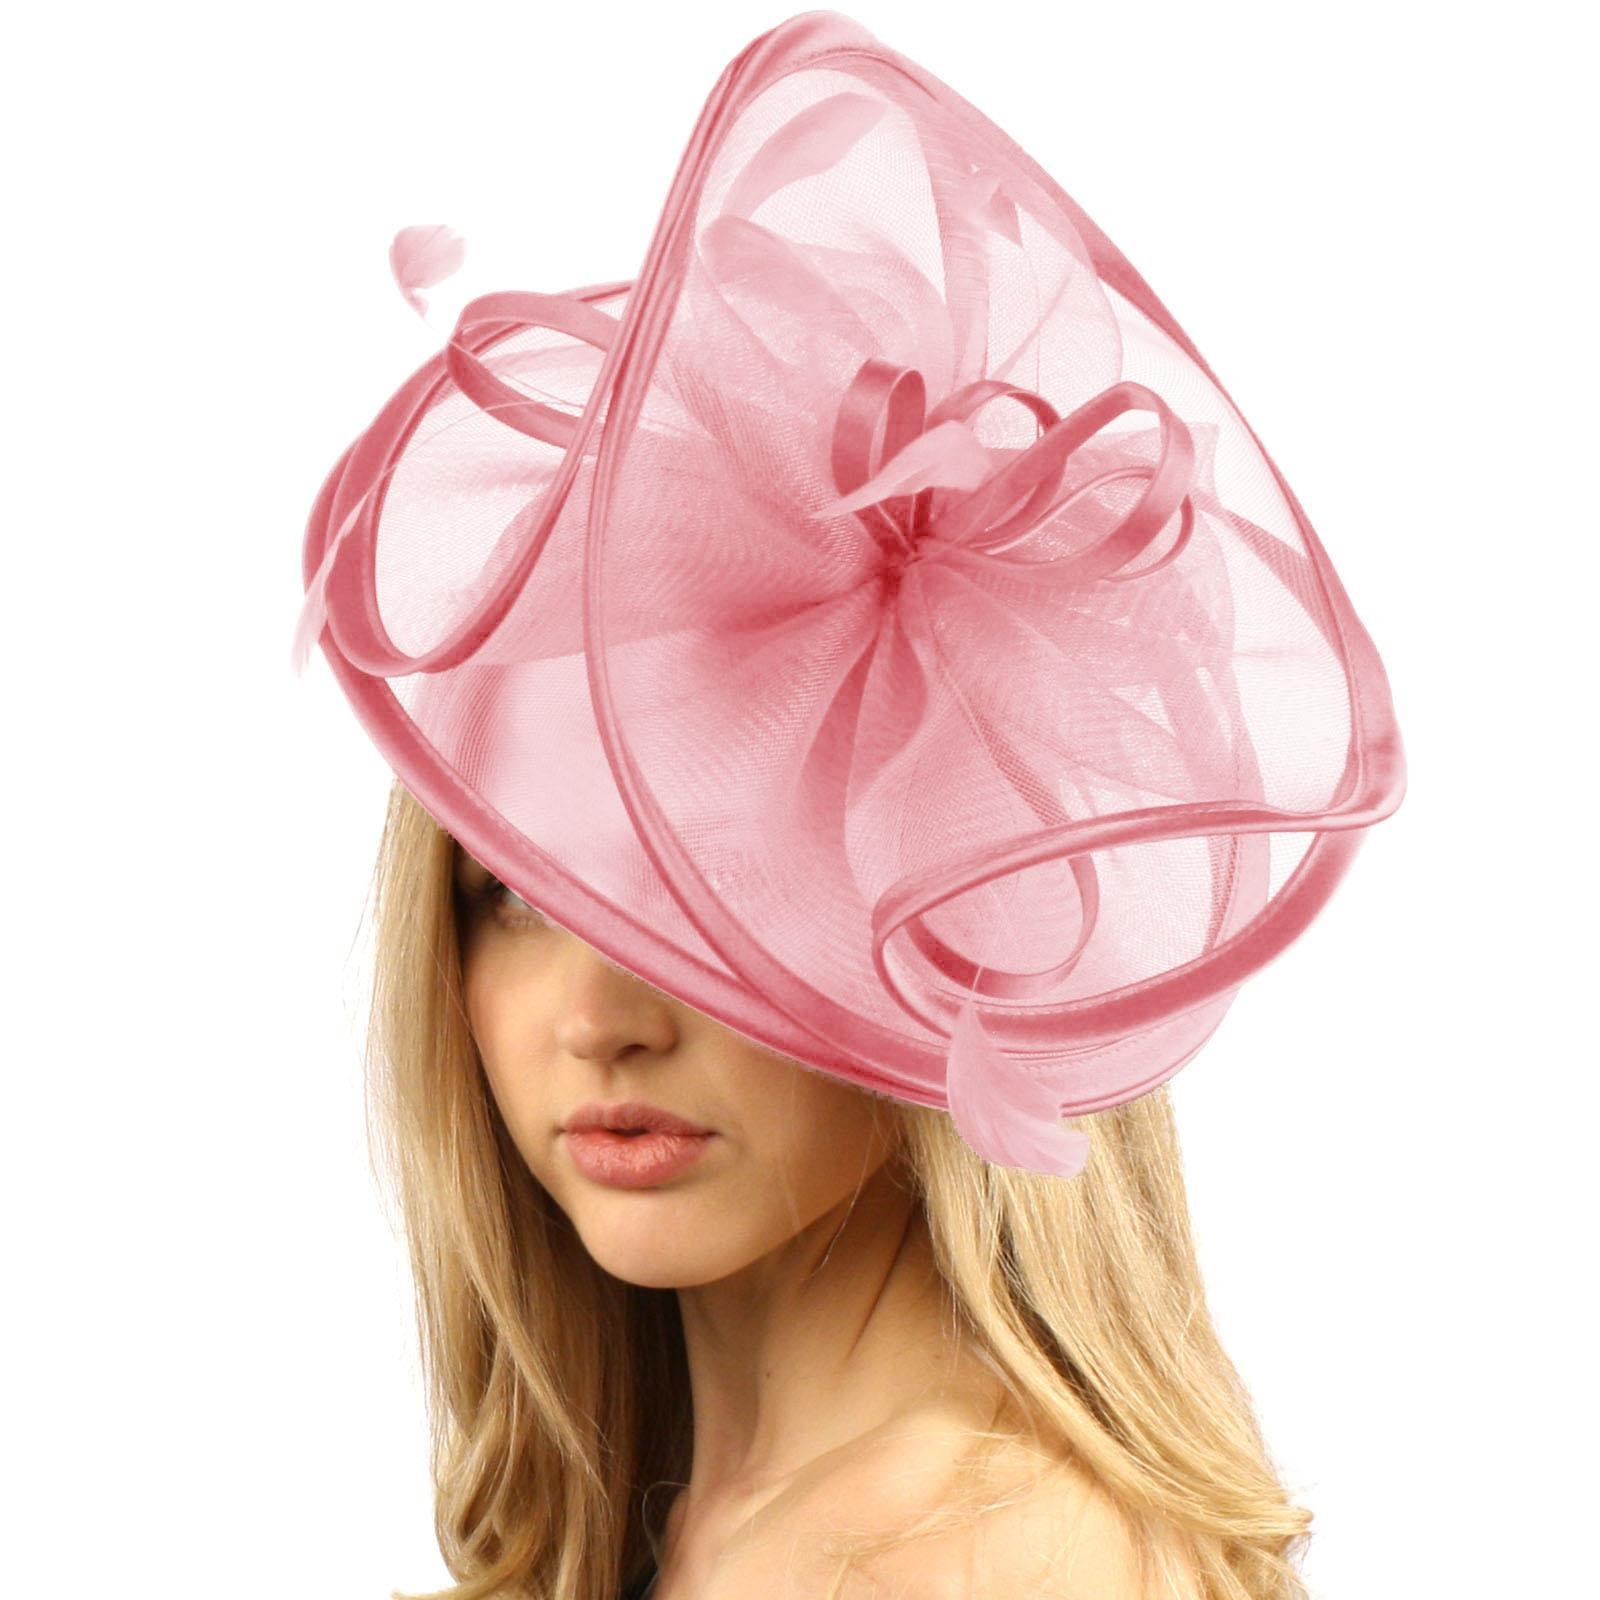 Feathers 3 Tier Layer 2 Tone Headband Fascinator Millinery Cocktail Hat Pink